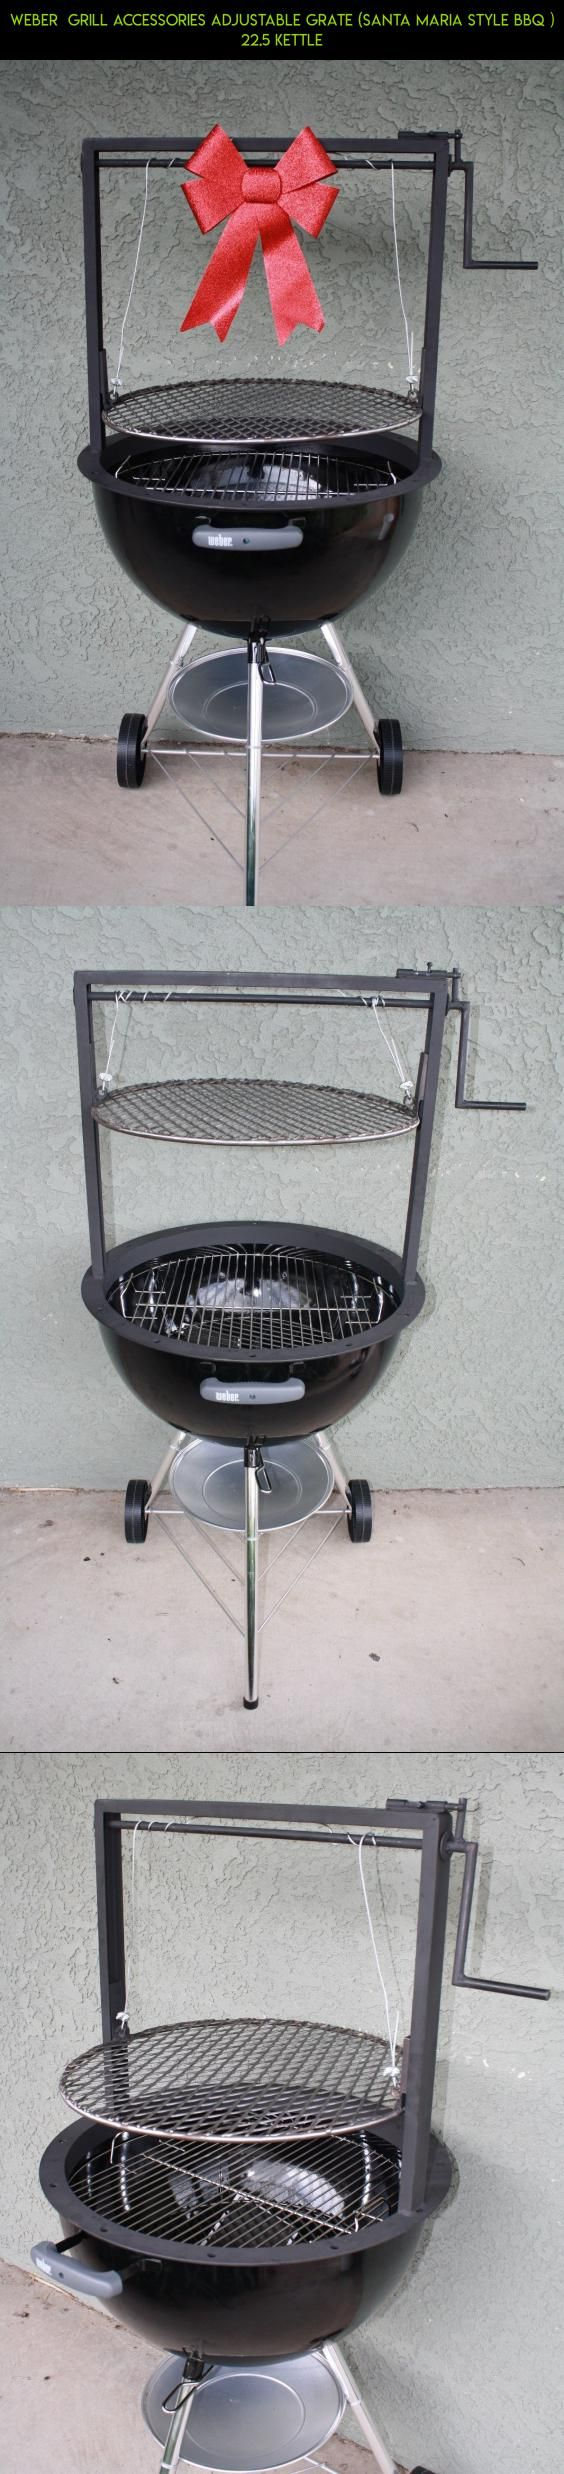 Weber  grill accessories adjustable grate (santa maria style bbq ) 22.5 kettle #racing #tech #technology #gadgets #camera #parts #fpv #grills #shopping #accessories #plans #kit #products #drone